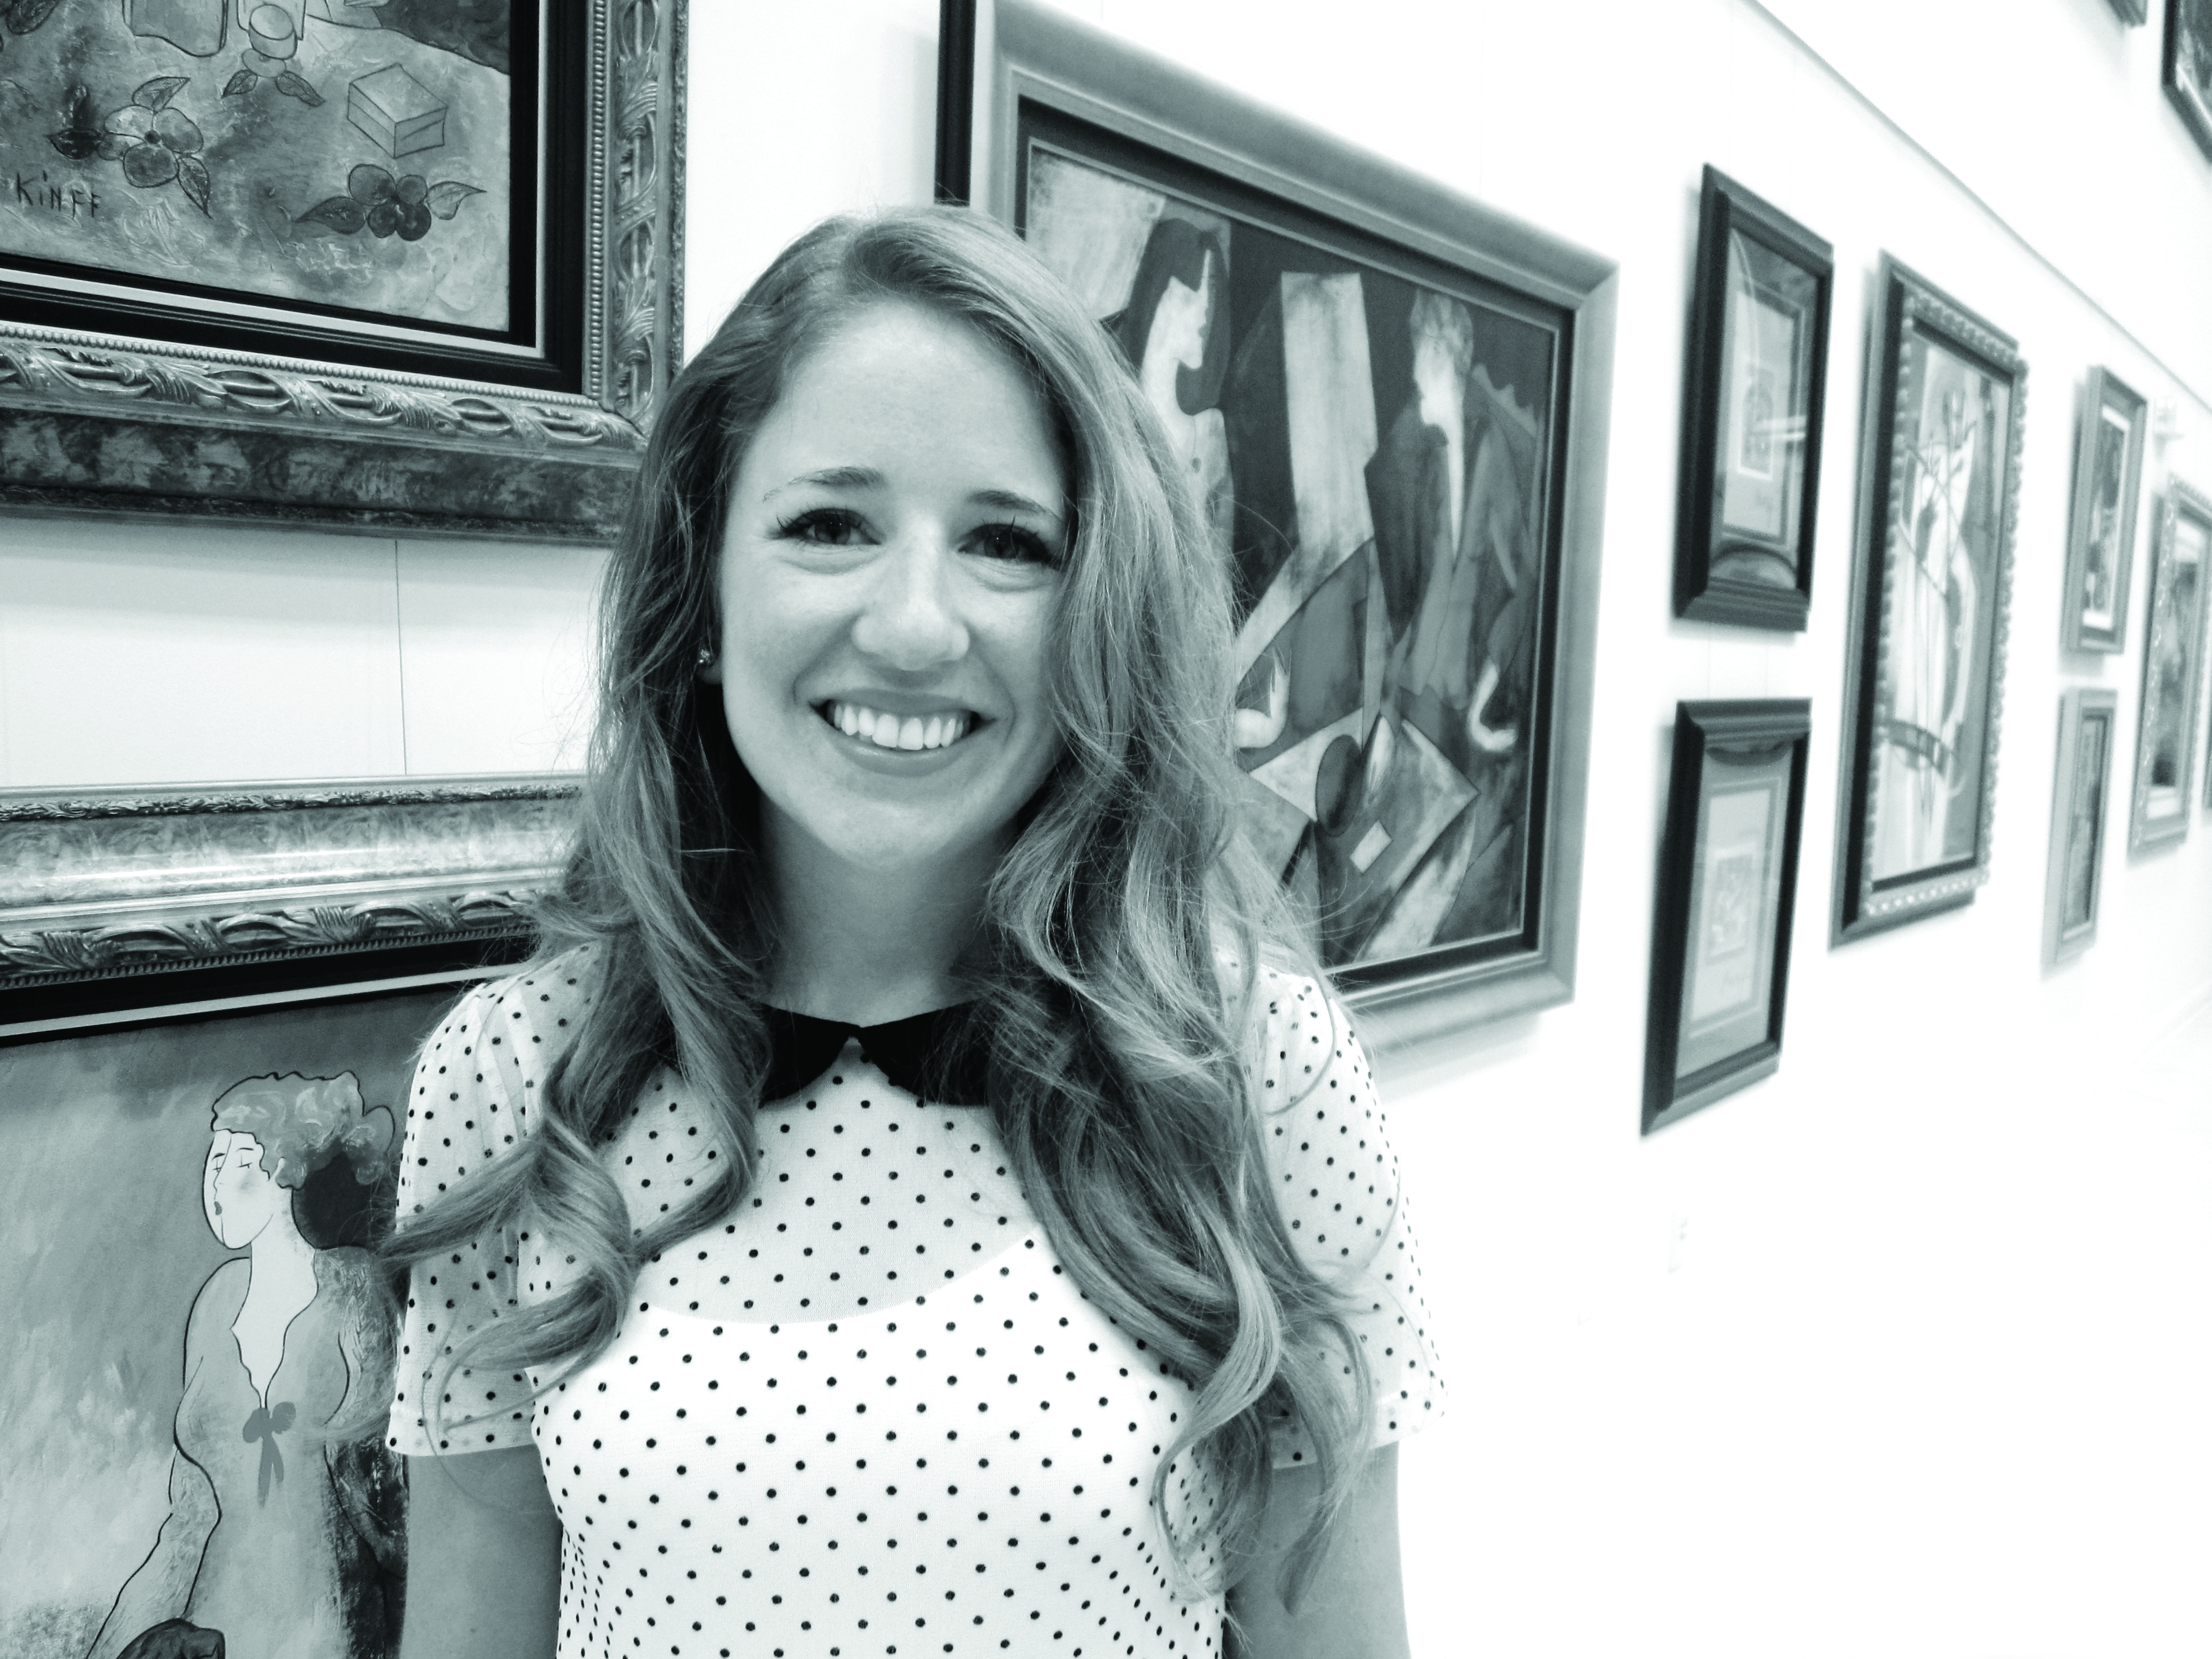 Woman wearing a dotted shirt stands in front of an art gallery wall and smiles at the camera